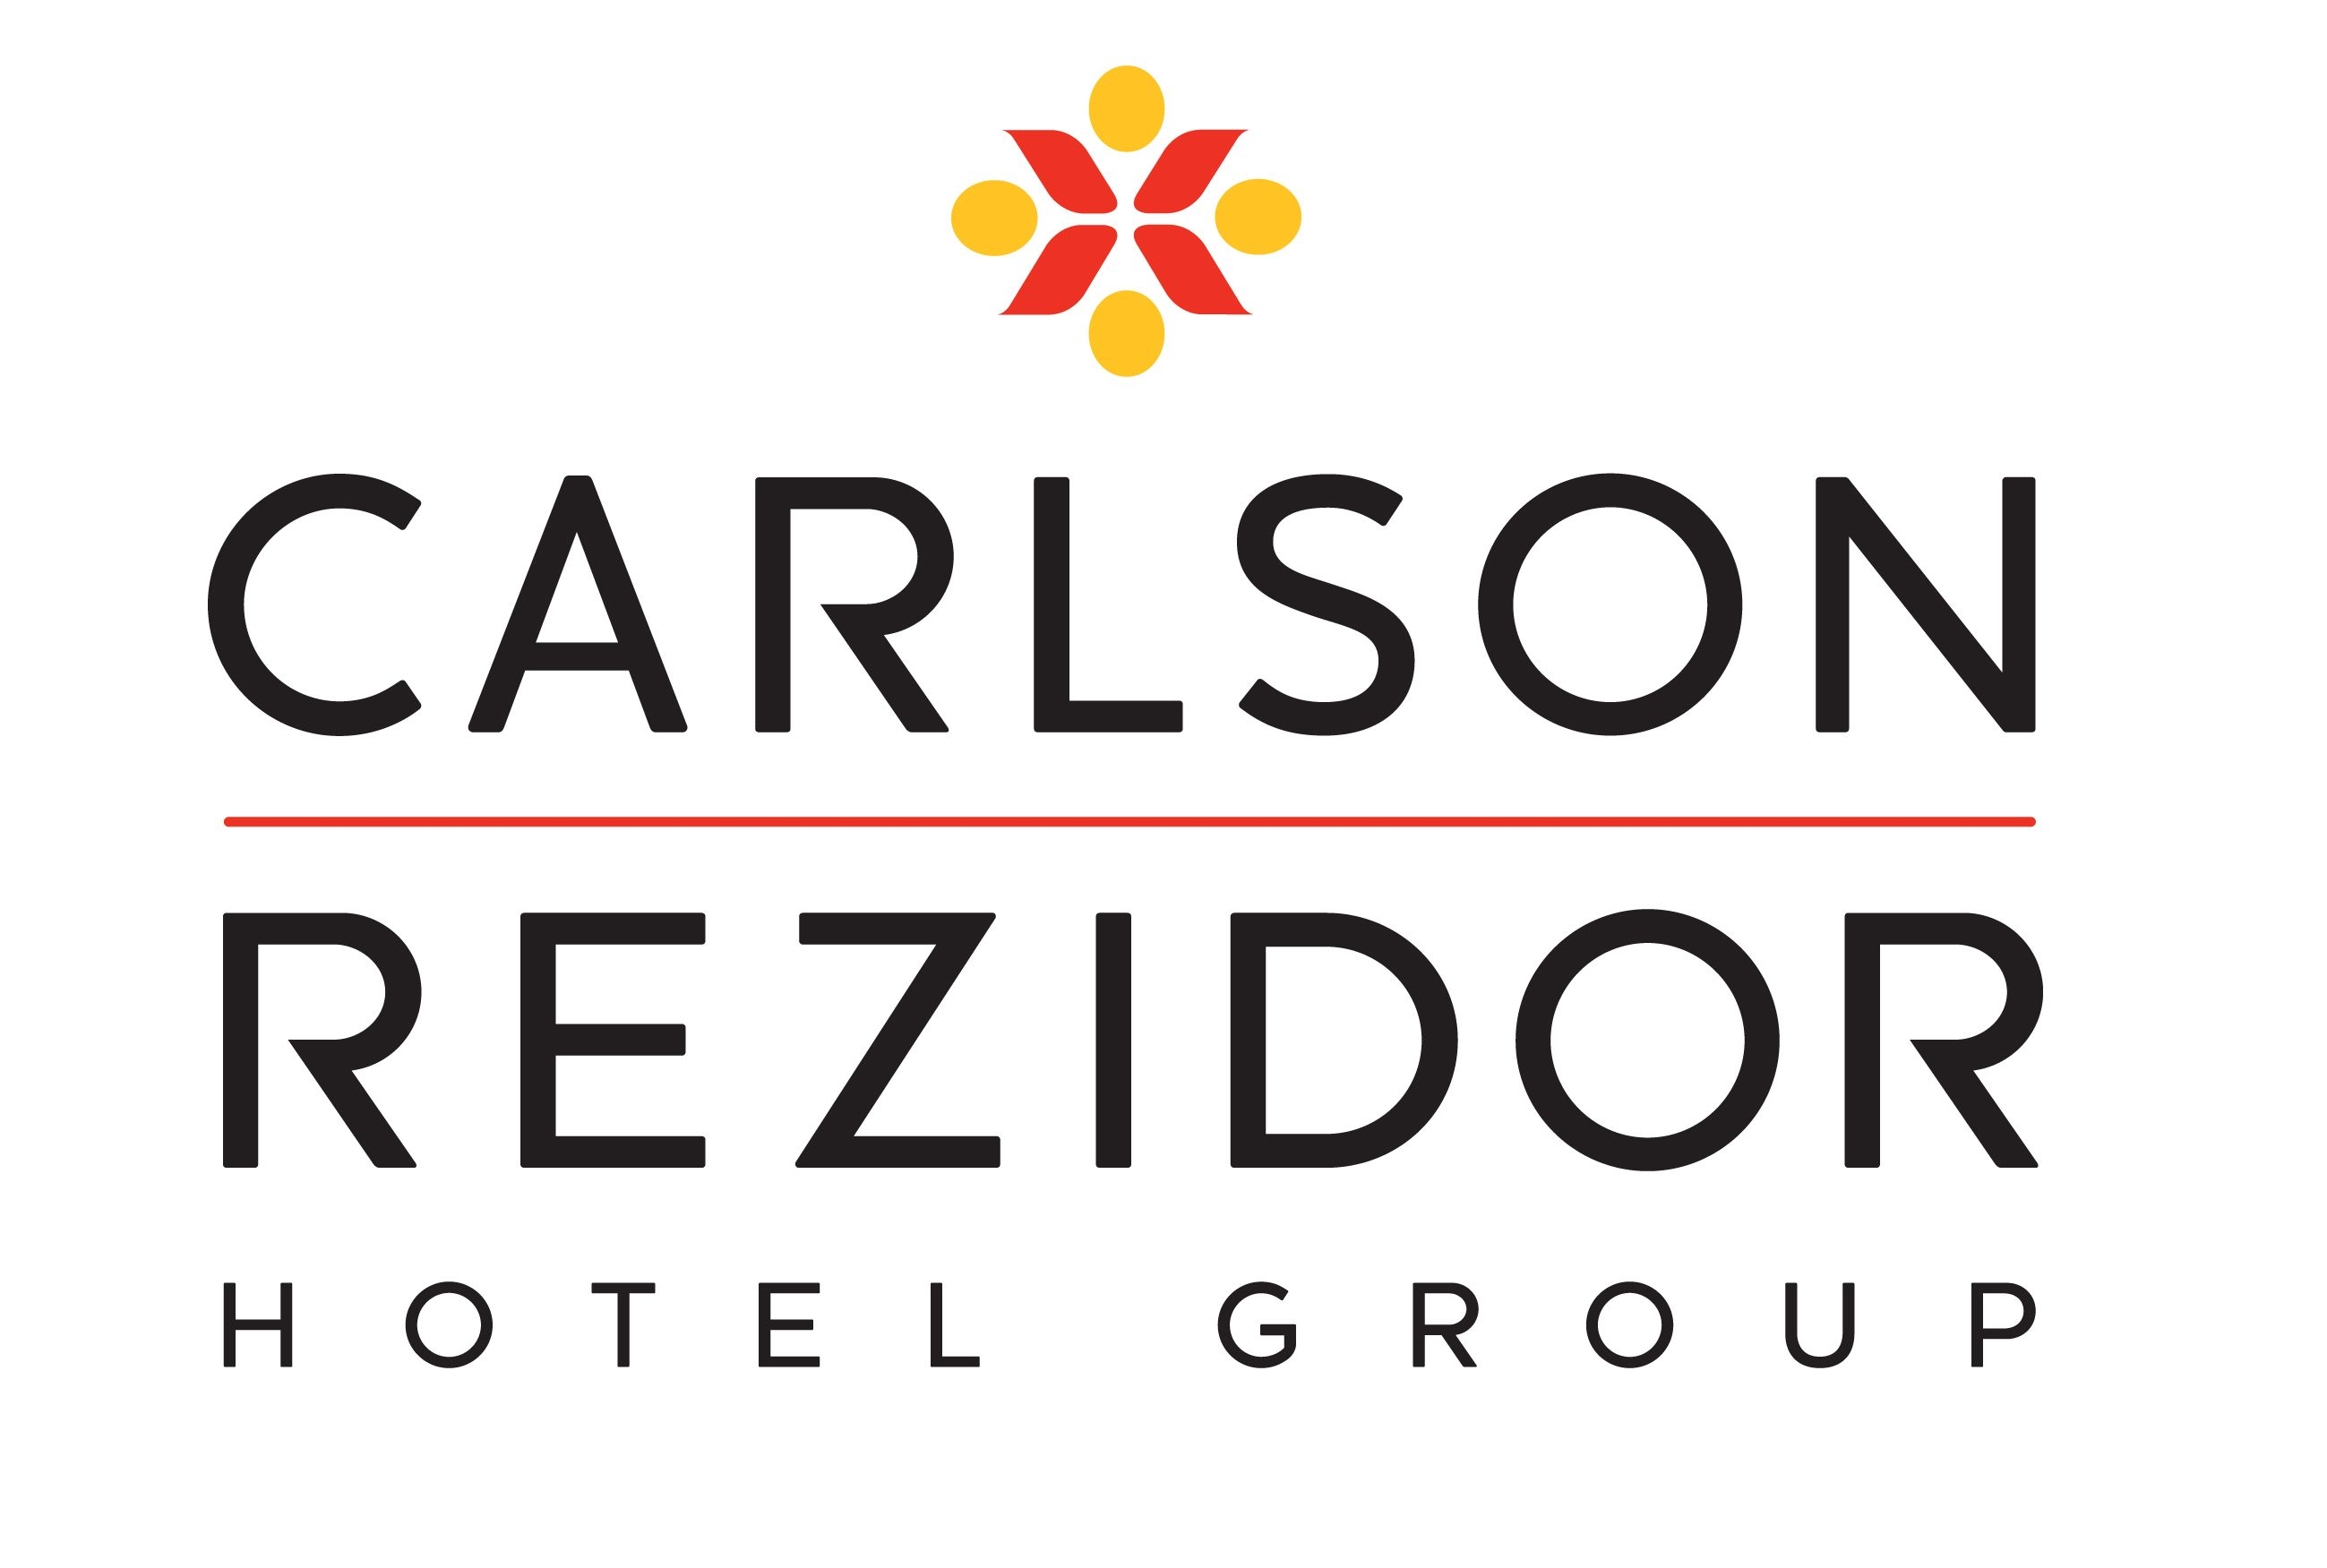 Carlson hotels in india, Hotel Carlson, Carlson group of hotels, Luxury hotels in india, Carlson Hotel services